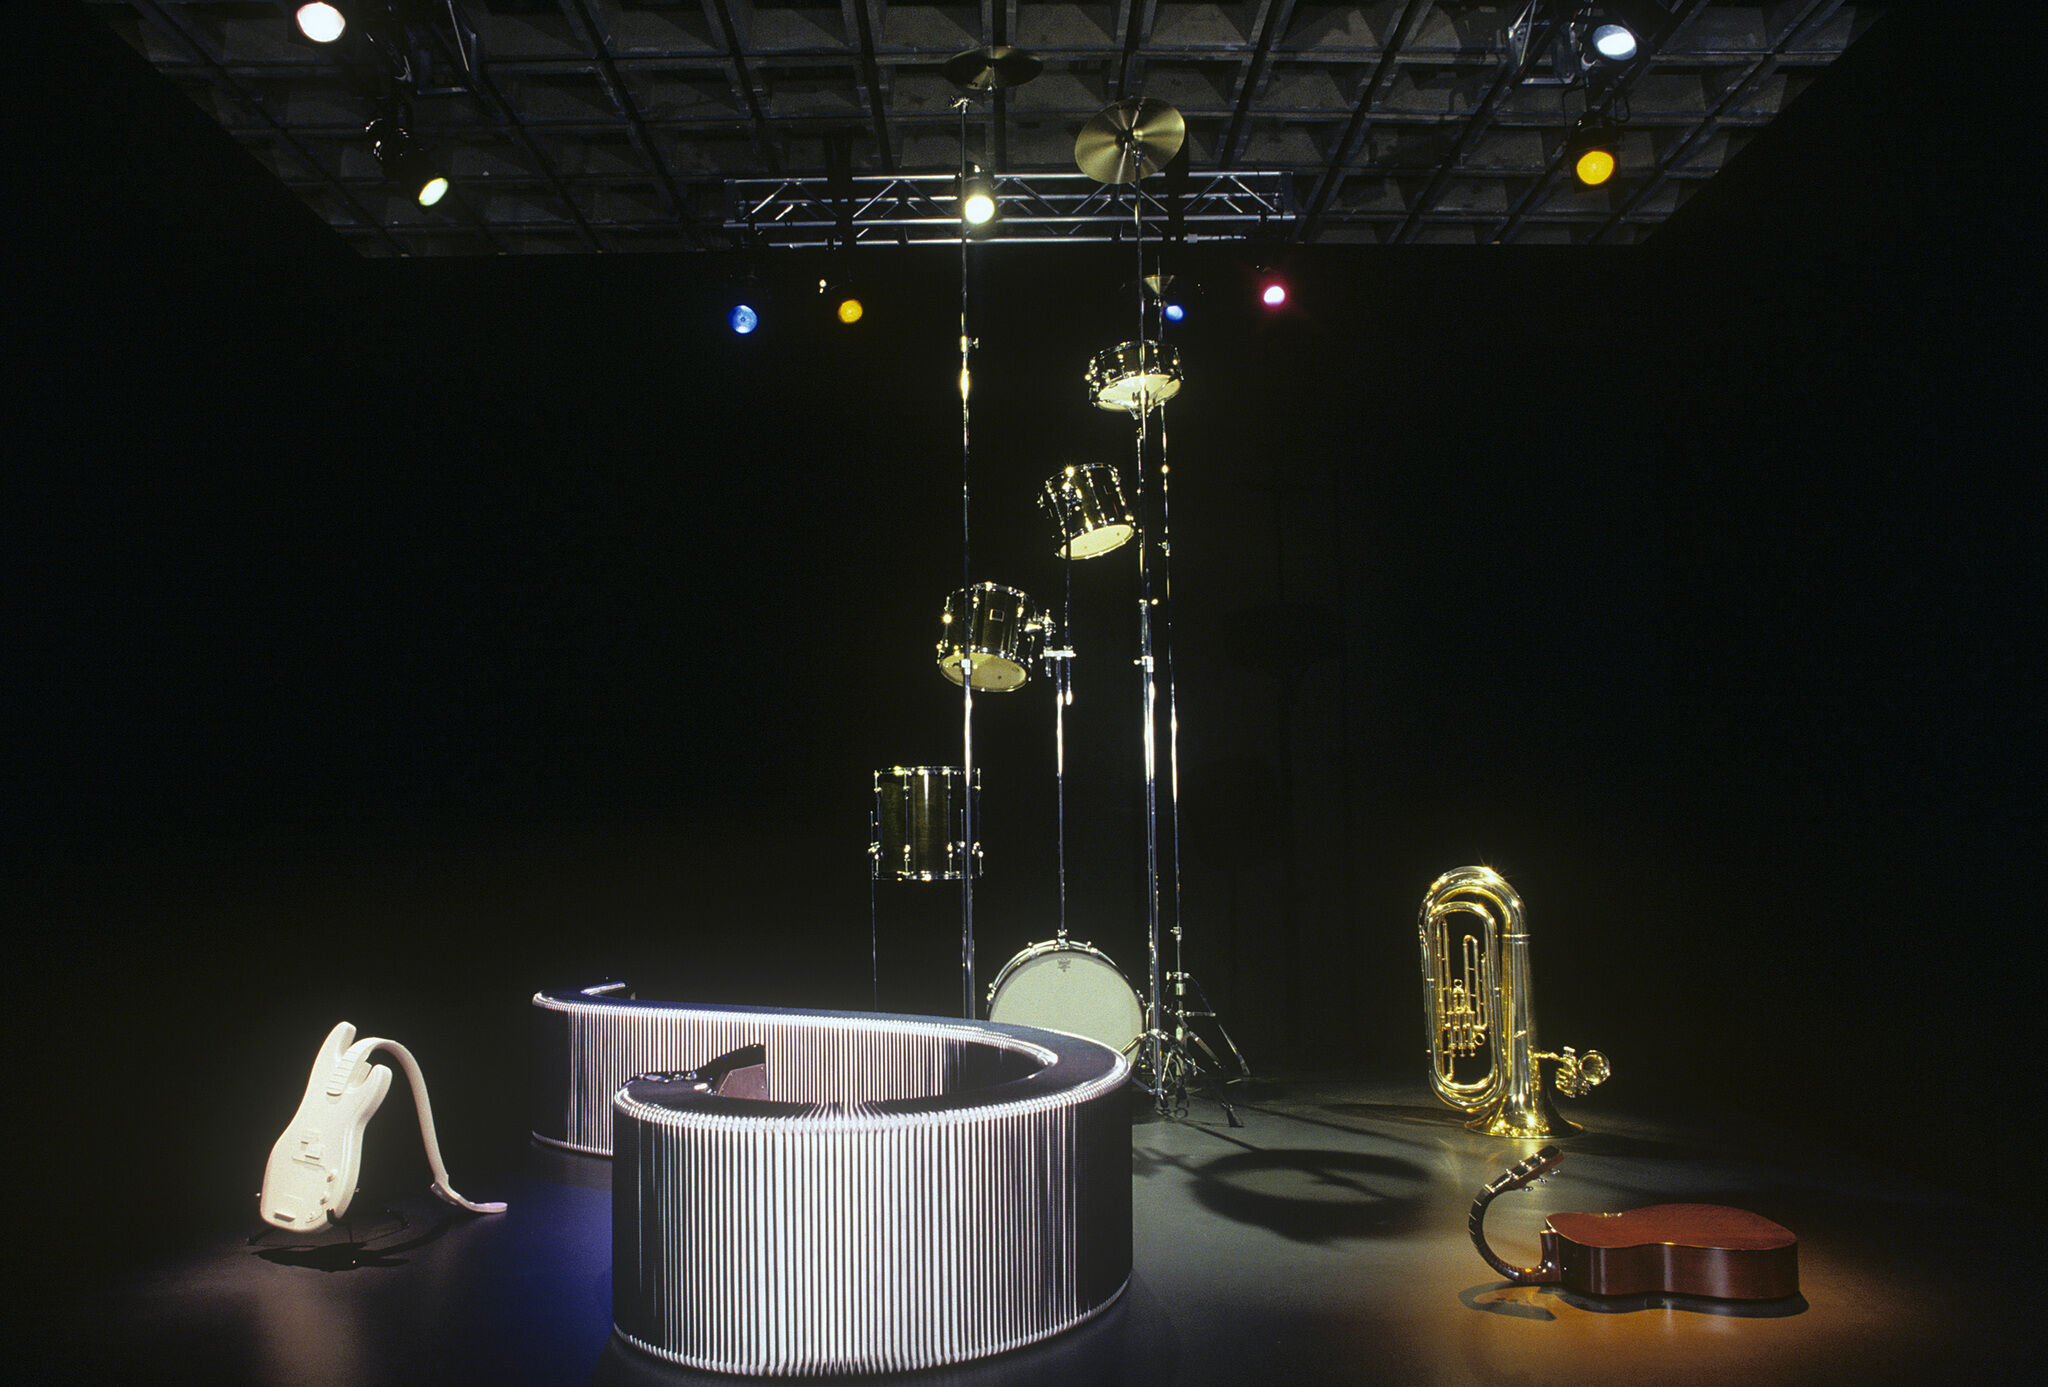 A dark gallery with sculptures of various musical instruments.